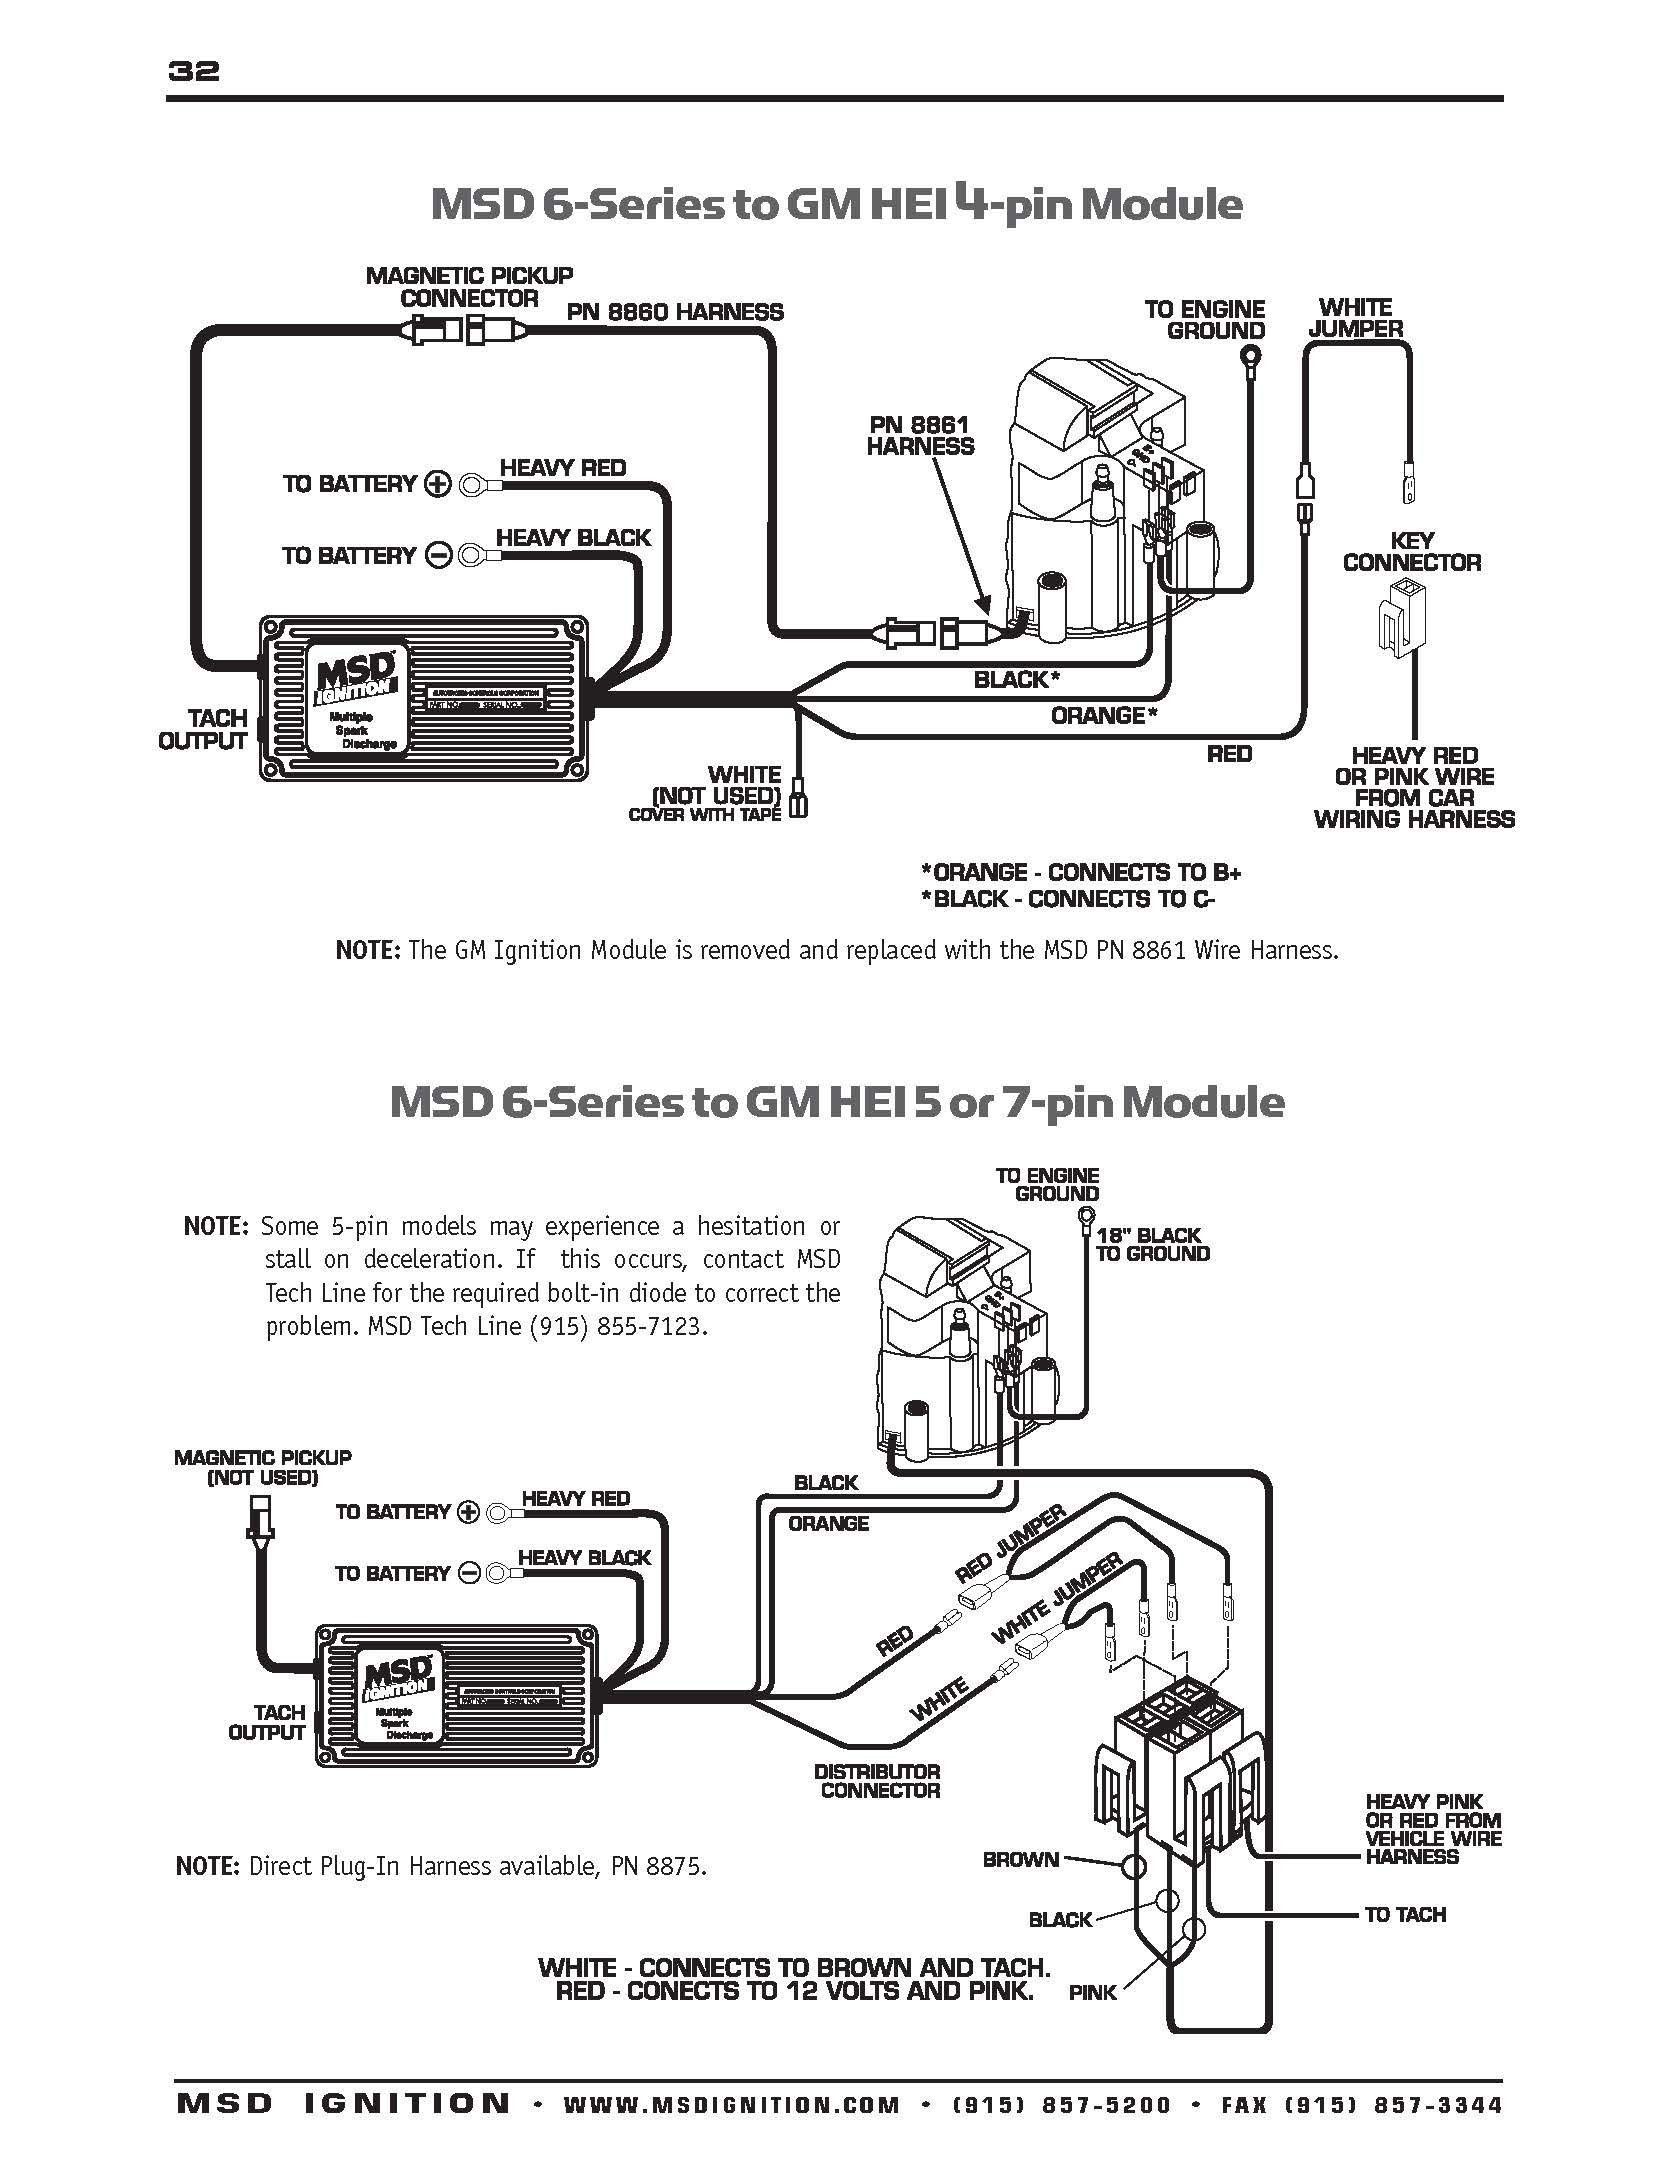 msd 6al hei wiring diagram Collection-350 hei msd wiring diagram autos weblog wire center u2022 rh casiaroc co msd 6a wiring diagram gm 12-r